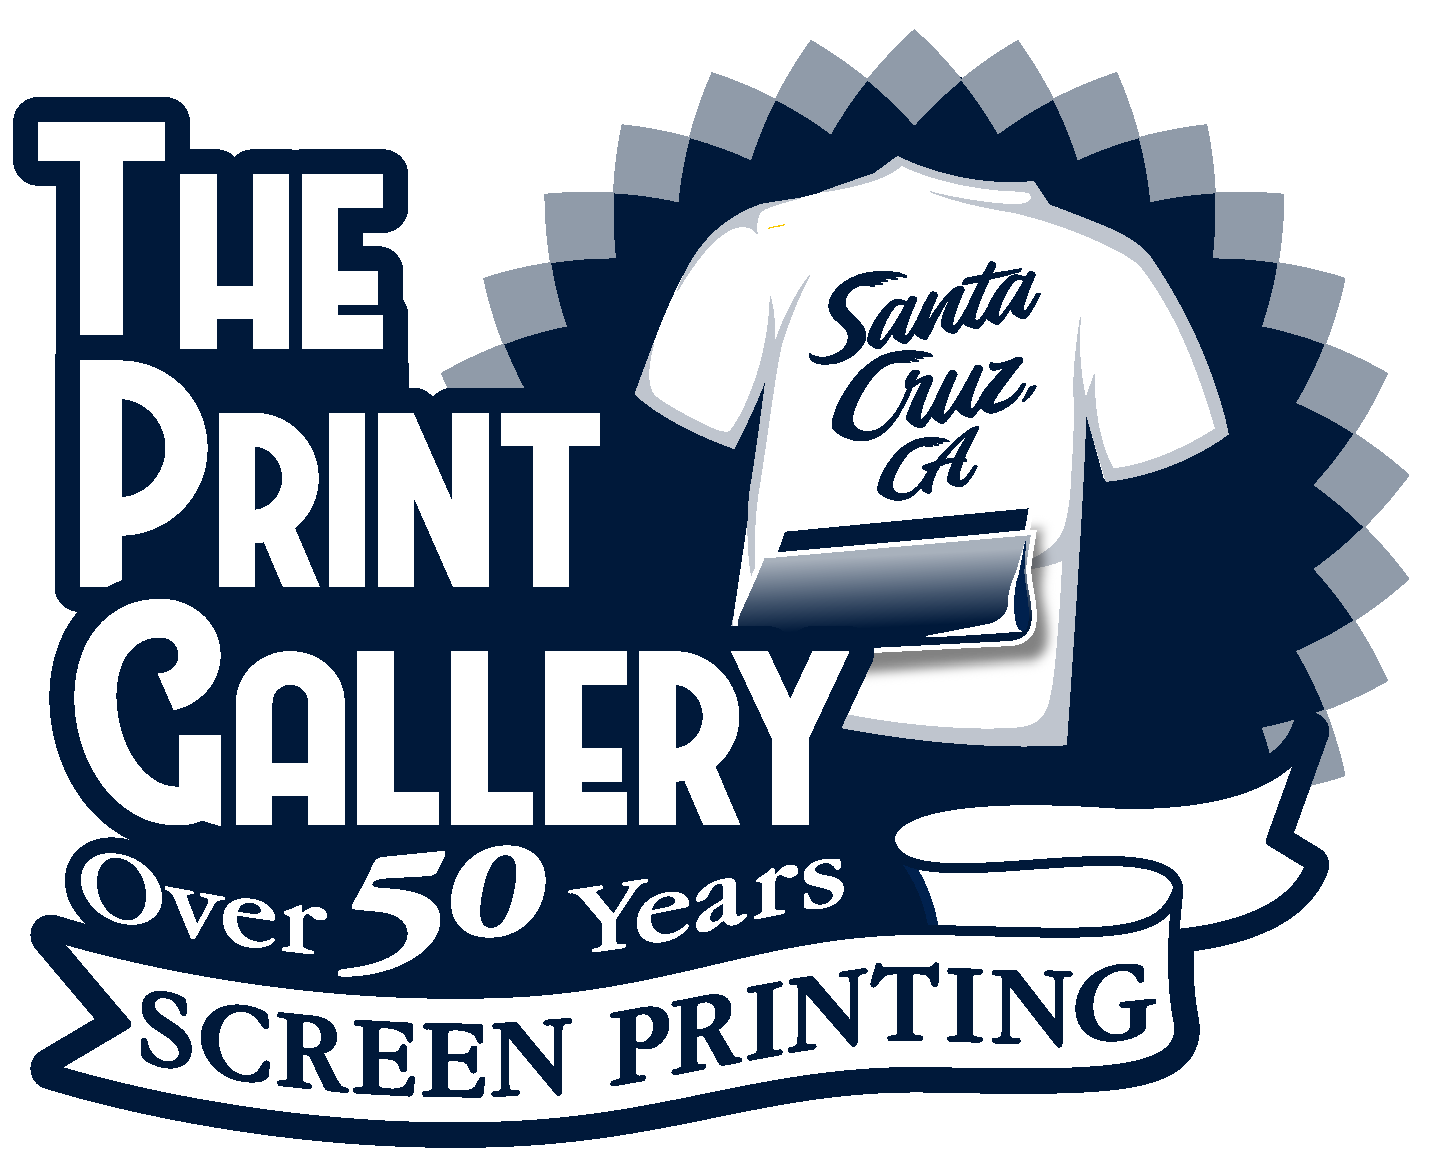 Screen Printing T Shirts Embroidery Services In Santa Cruz Ca By